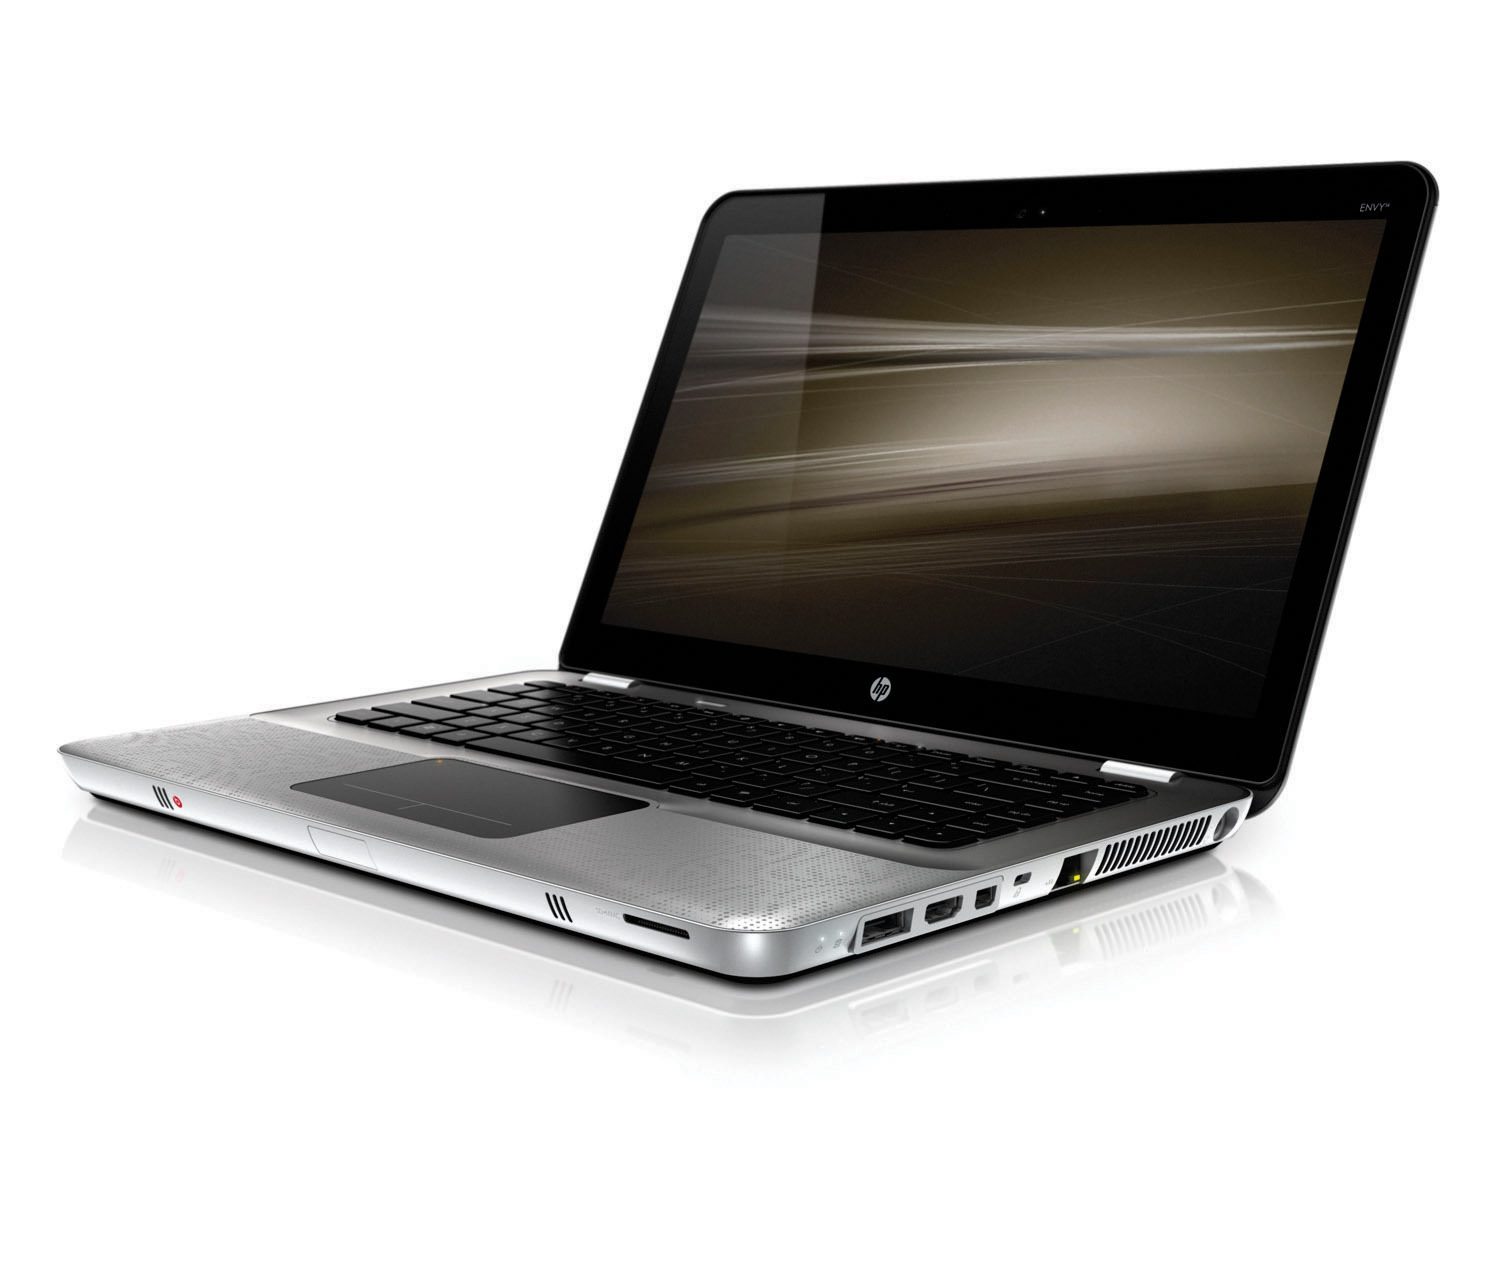 HP Pavilion dm4 Core i5 Entertainment Notebook PC | Tech World